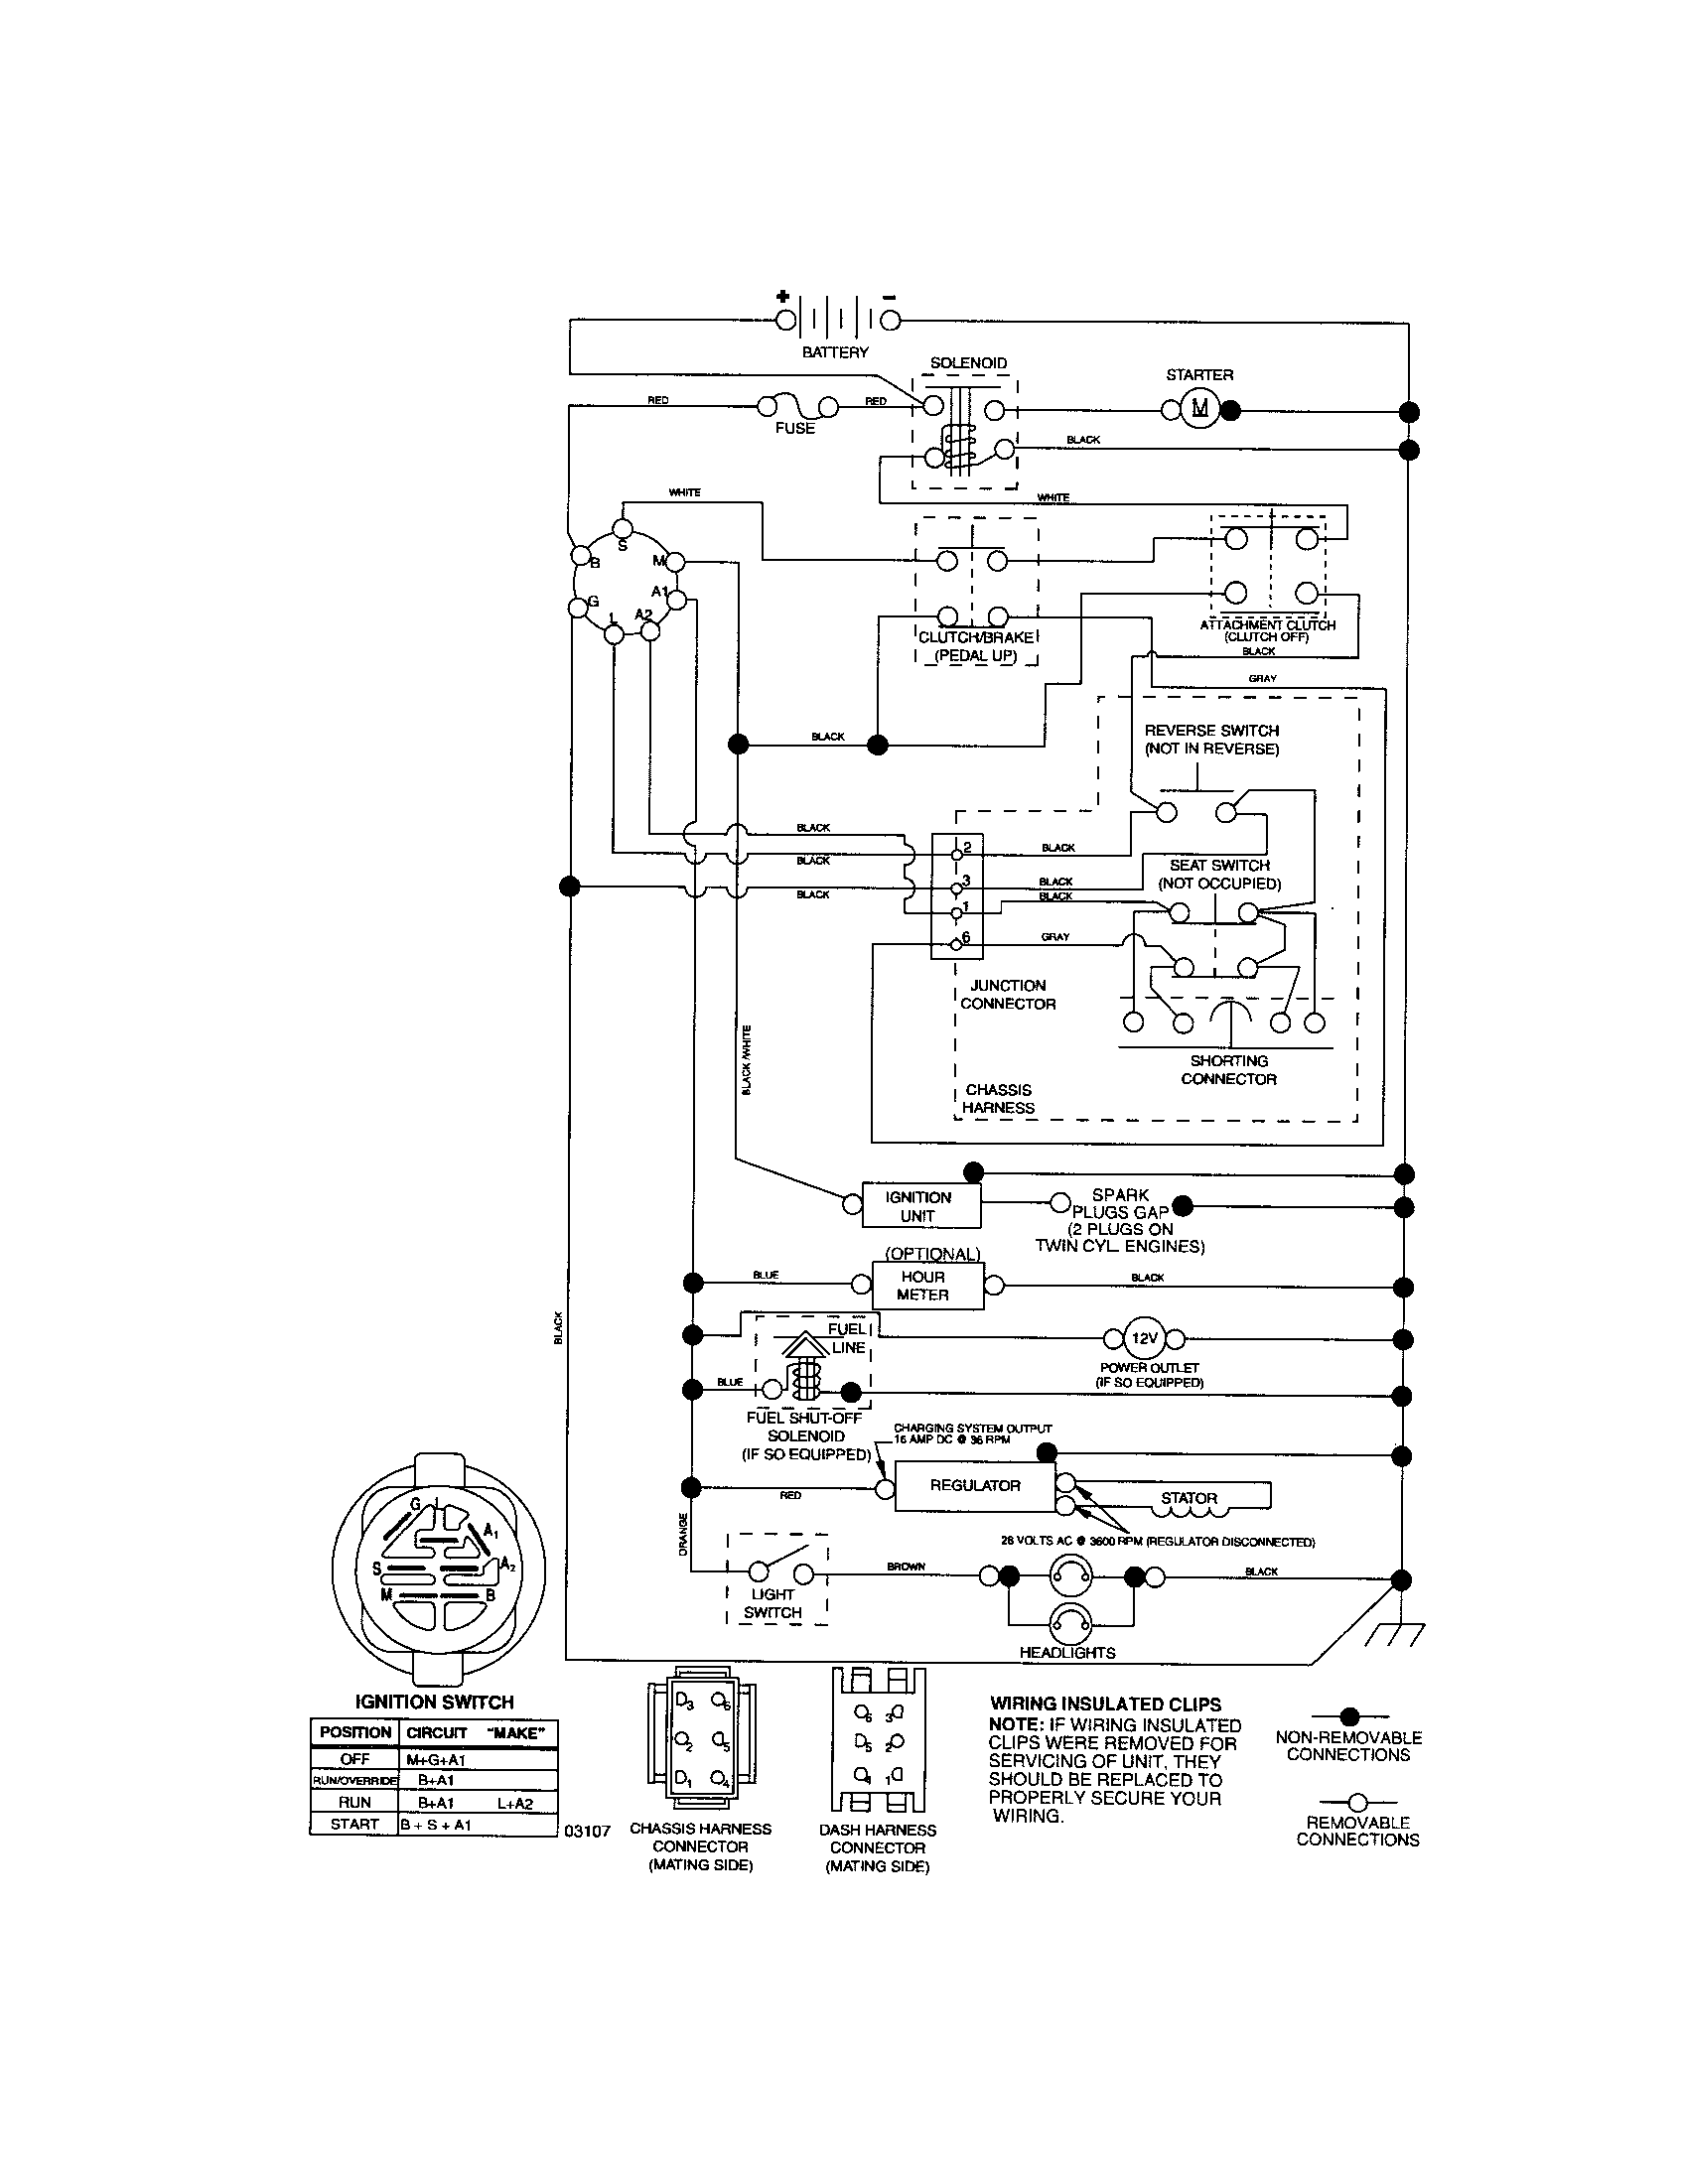 craftsman riding mower electrical diagram wiring diagram craftsman rh pinterest com honda small engine wiring diagram small engine wiring repair